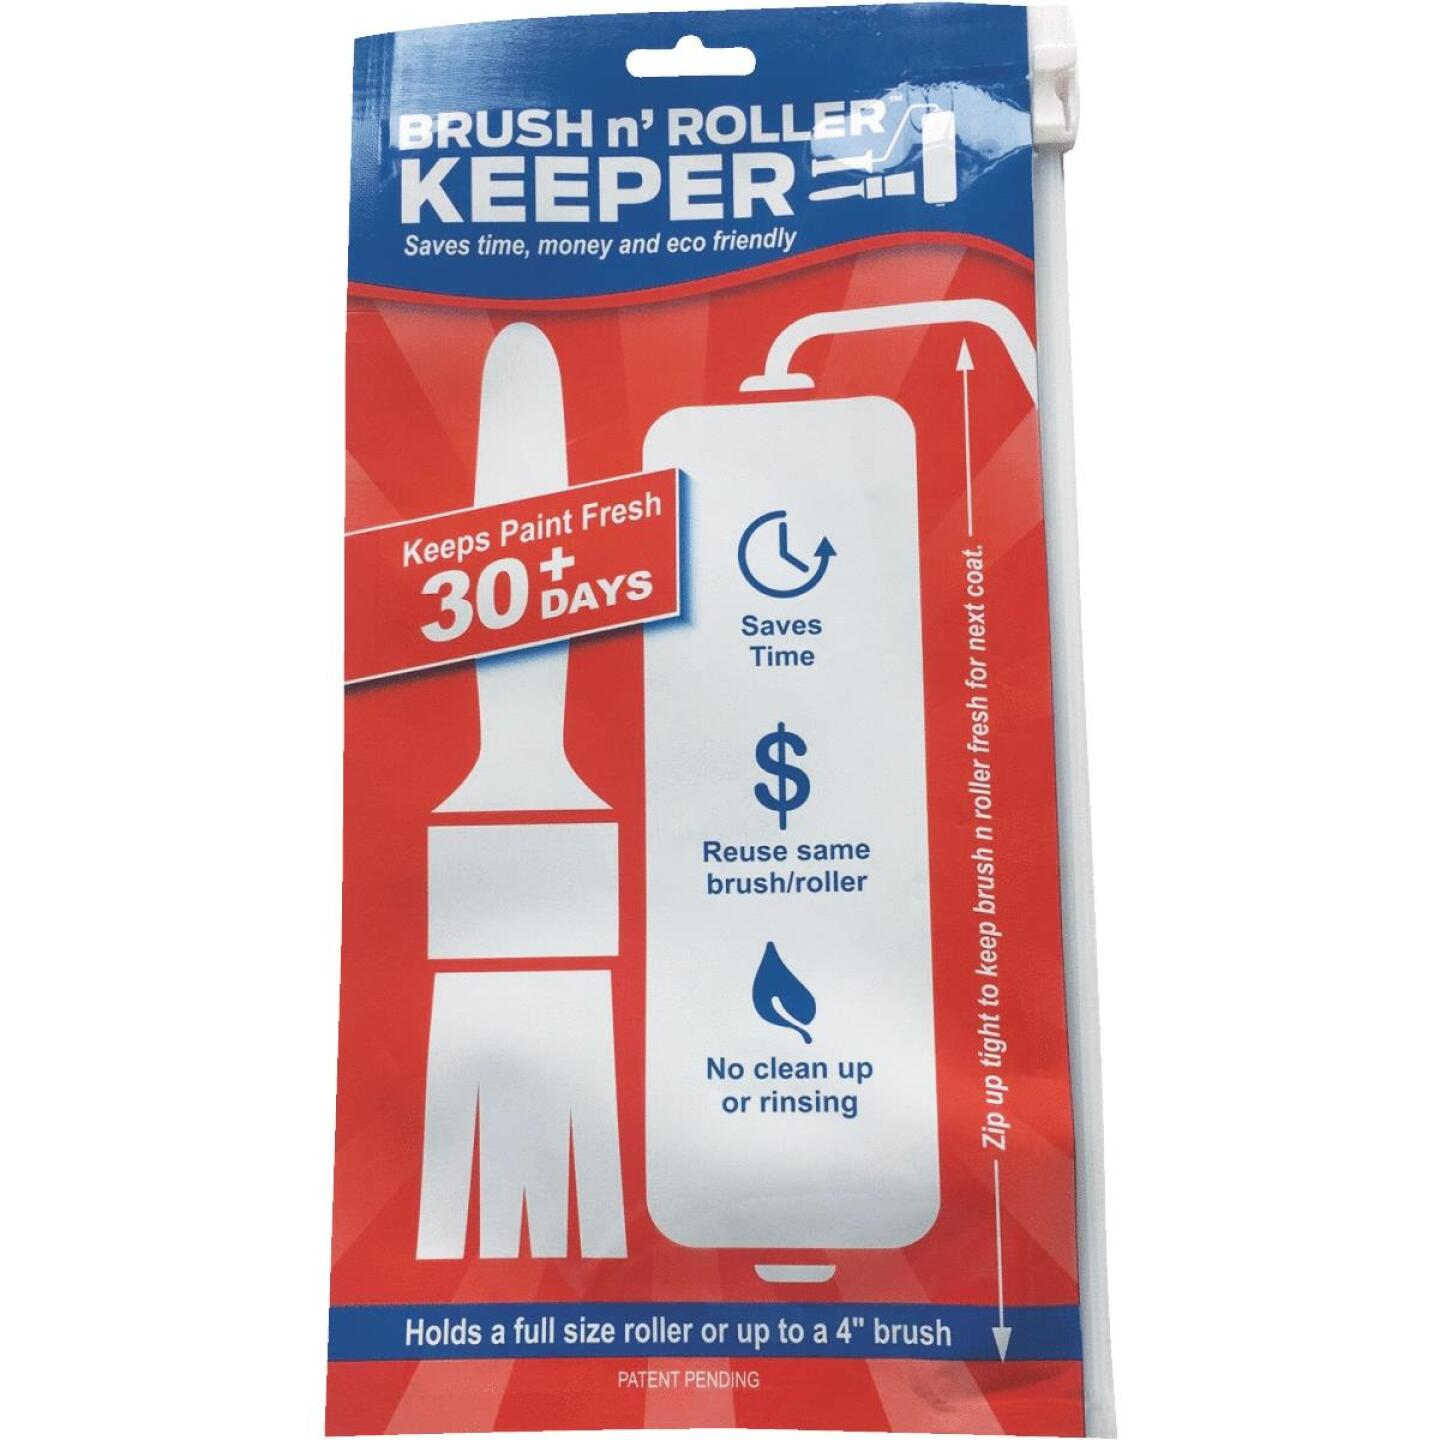 Brush 'n Roller Keeper 5 In. x 11 In. Paint Brush & Roller Cover Image 1